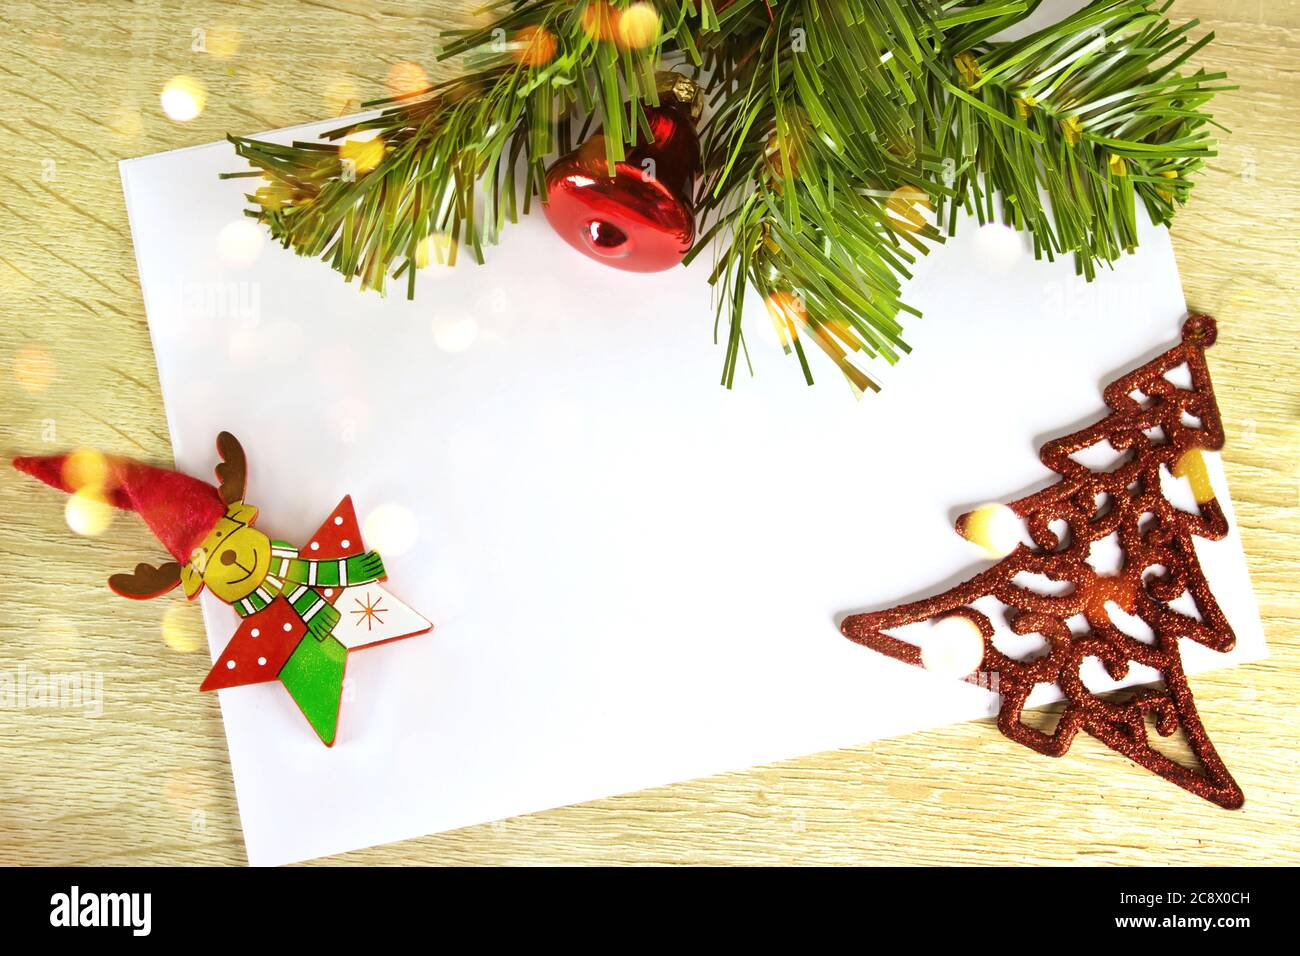 merry christmas and happy new year 2021 christmas tree and toys with bokeh letter to santa claus a new year s background with new year decorations stock photo alamy https www alamy com merry christmas and happy new year 2021 christmas tree and toys with bokeh letter to santa claus a new years background with new year decorations image366906081 html